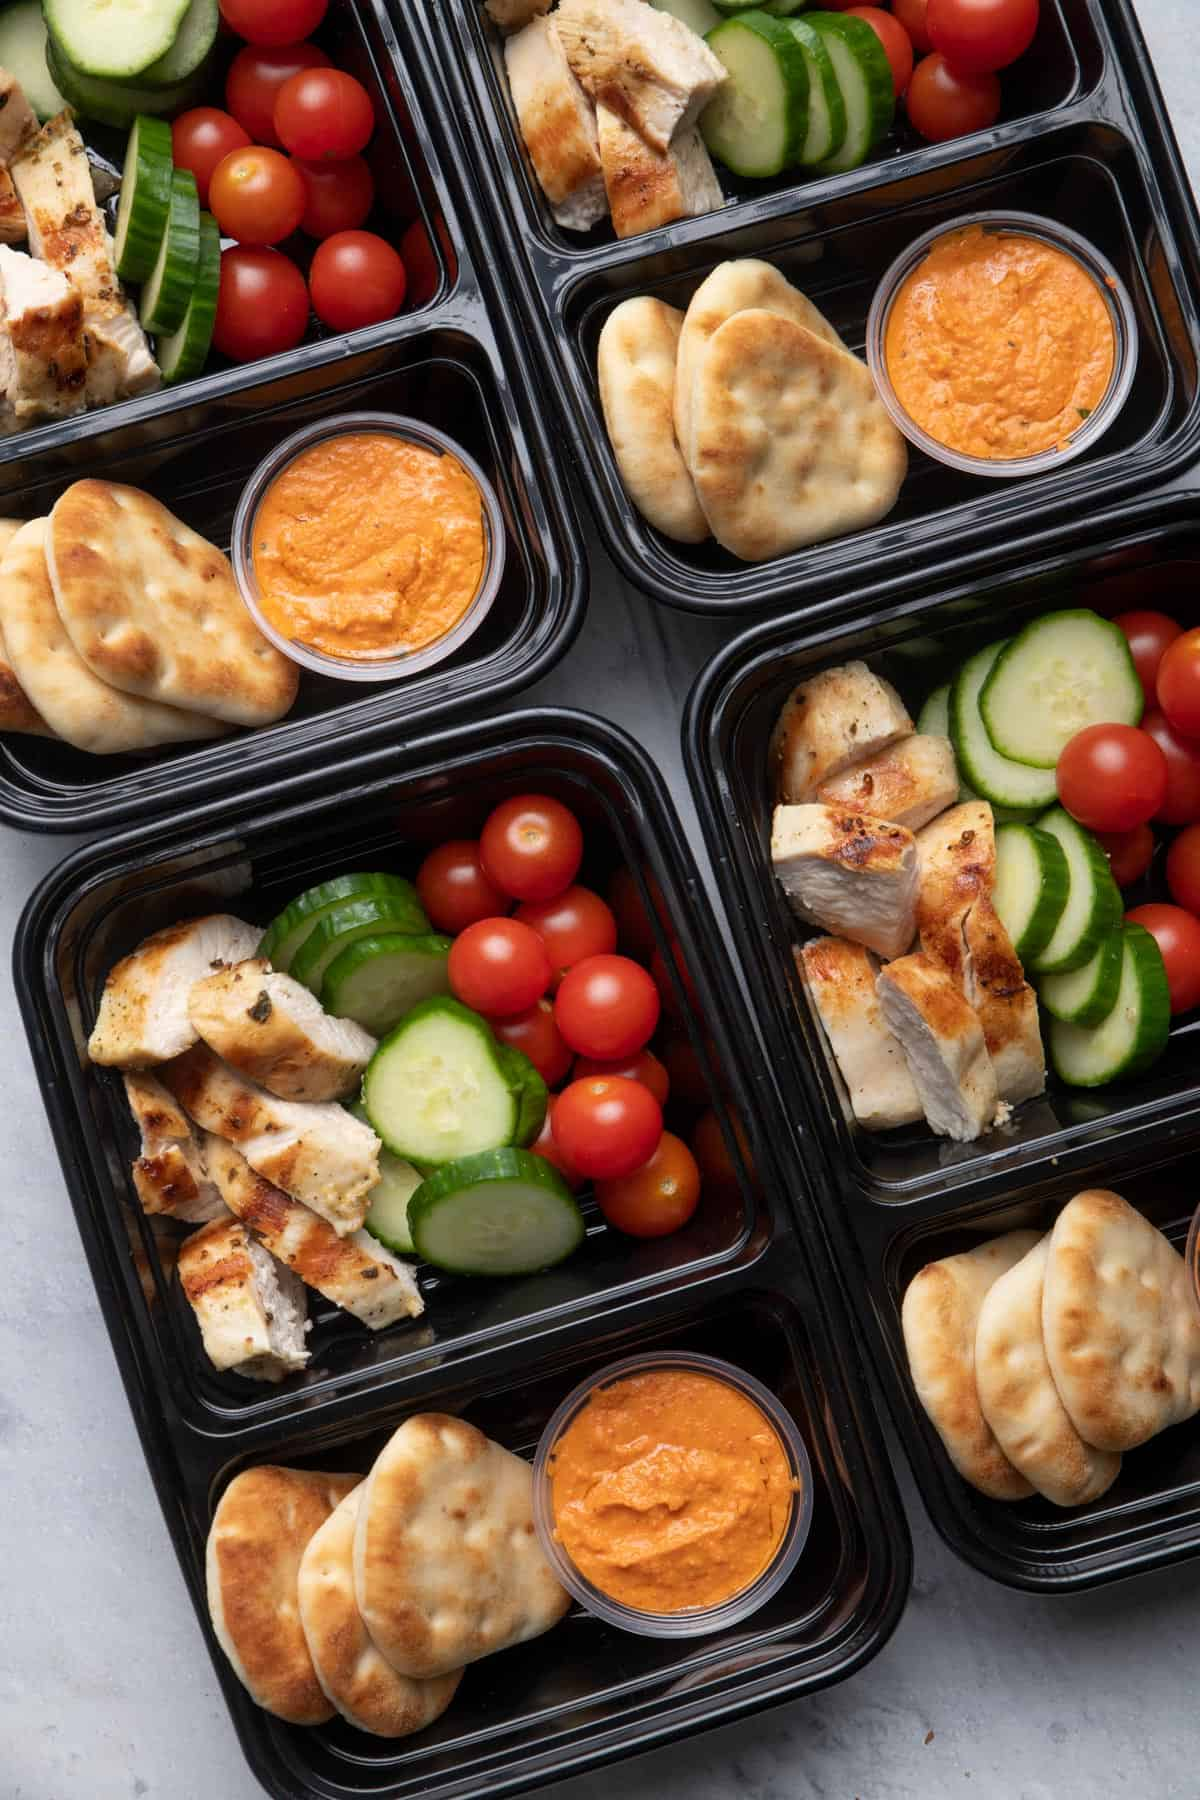 Meal prepped grilled chicken with hummus and veggies